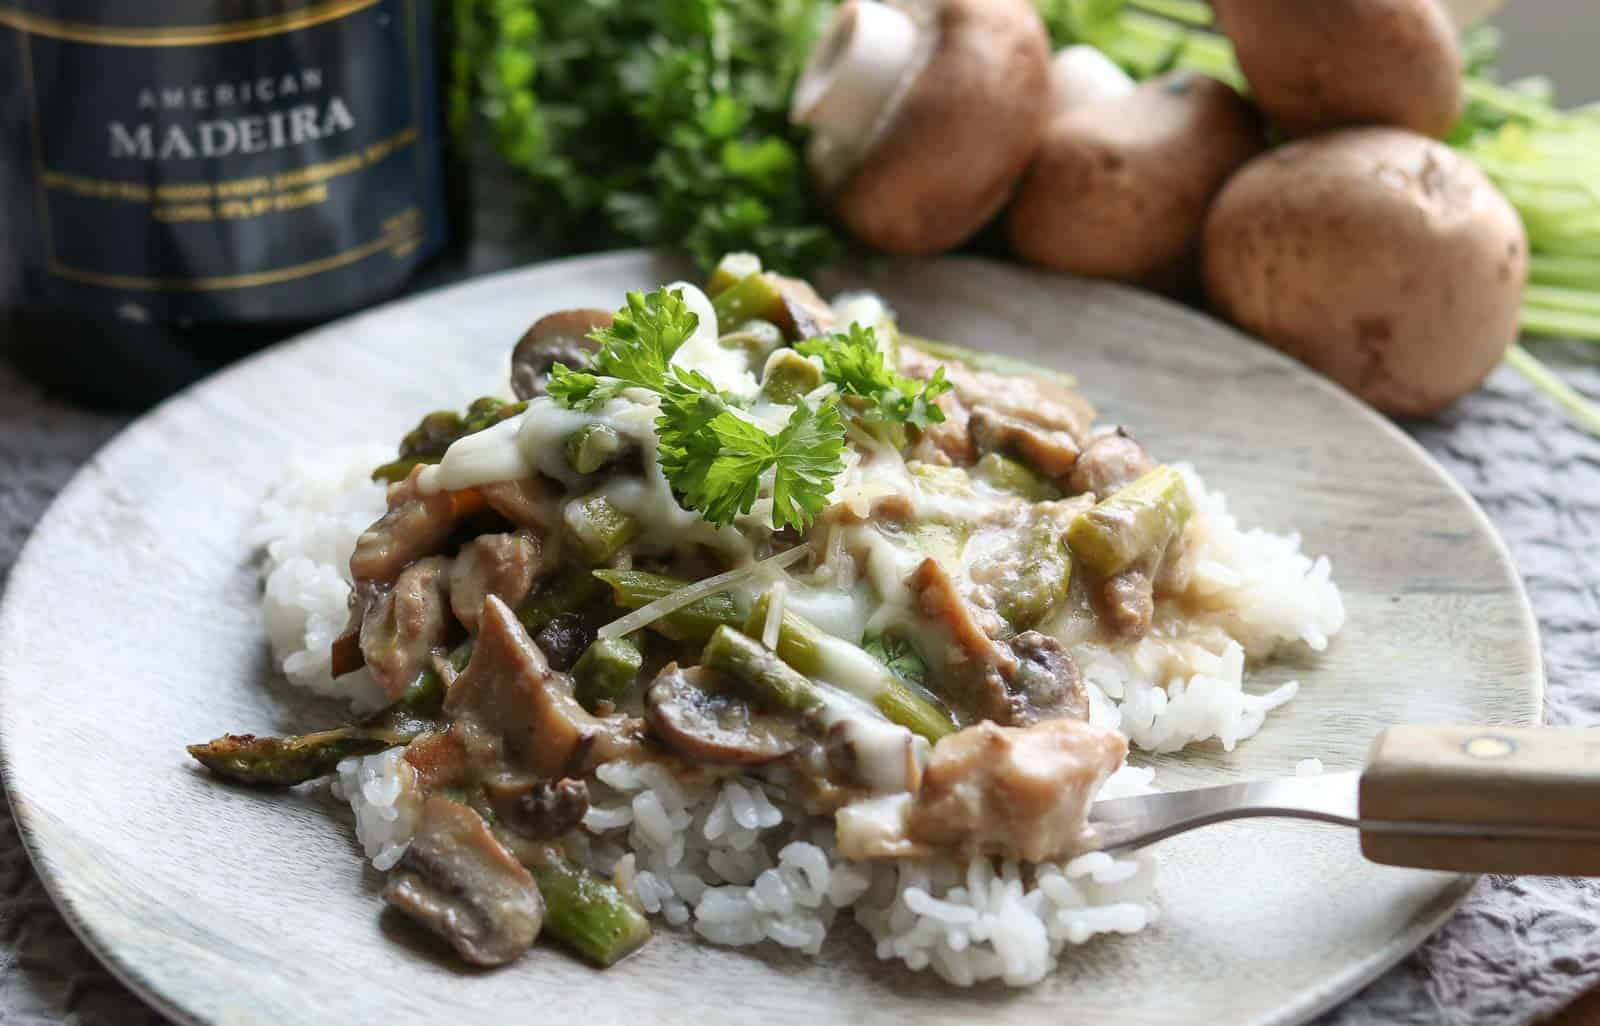 Easy Healthy Instant Pot Chicken Madeira on a wood plate with mushrooms, parsley and Madeira wine in the background from Gourmet Done Skinny